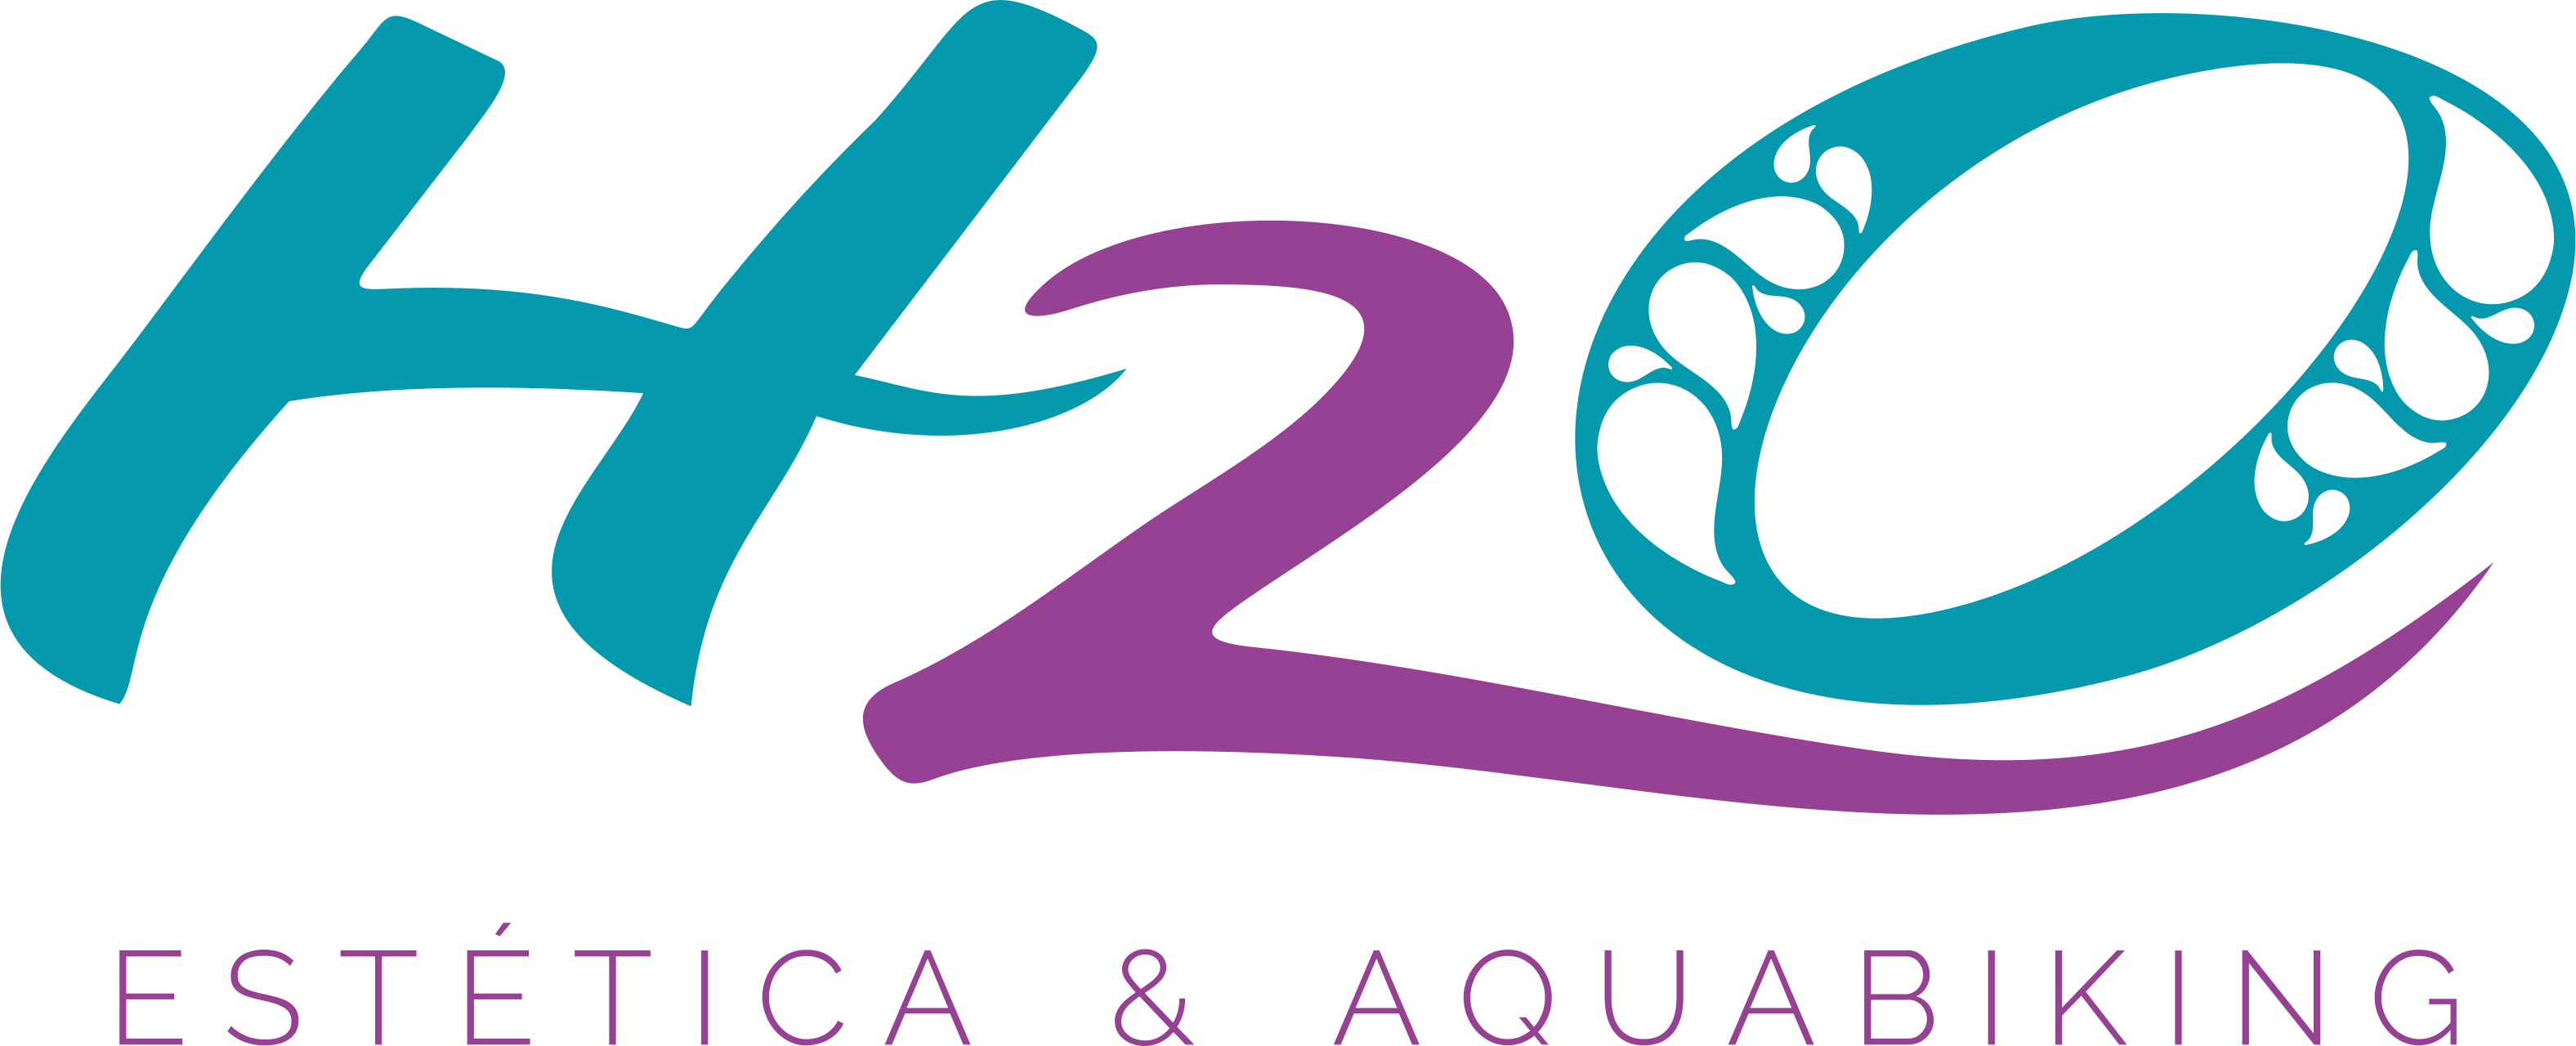 H2o Estética & Aquabiking